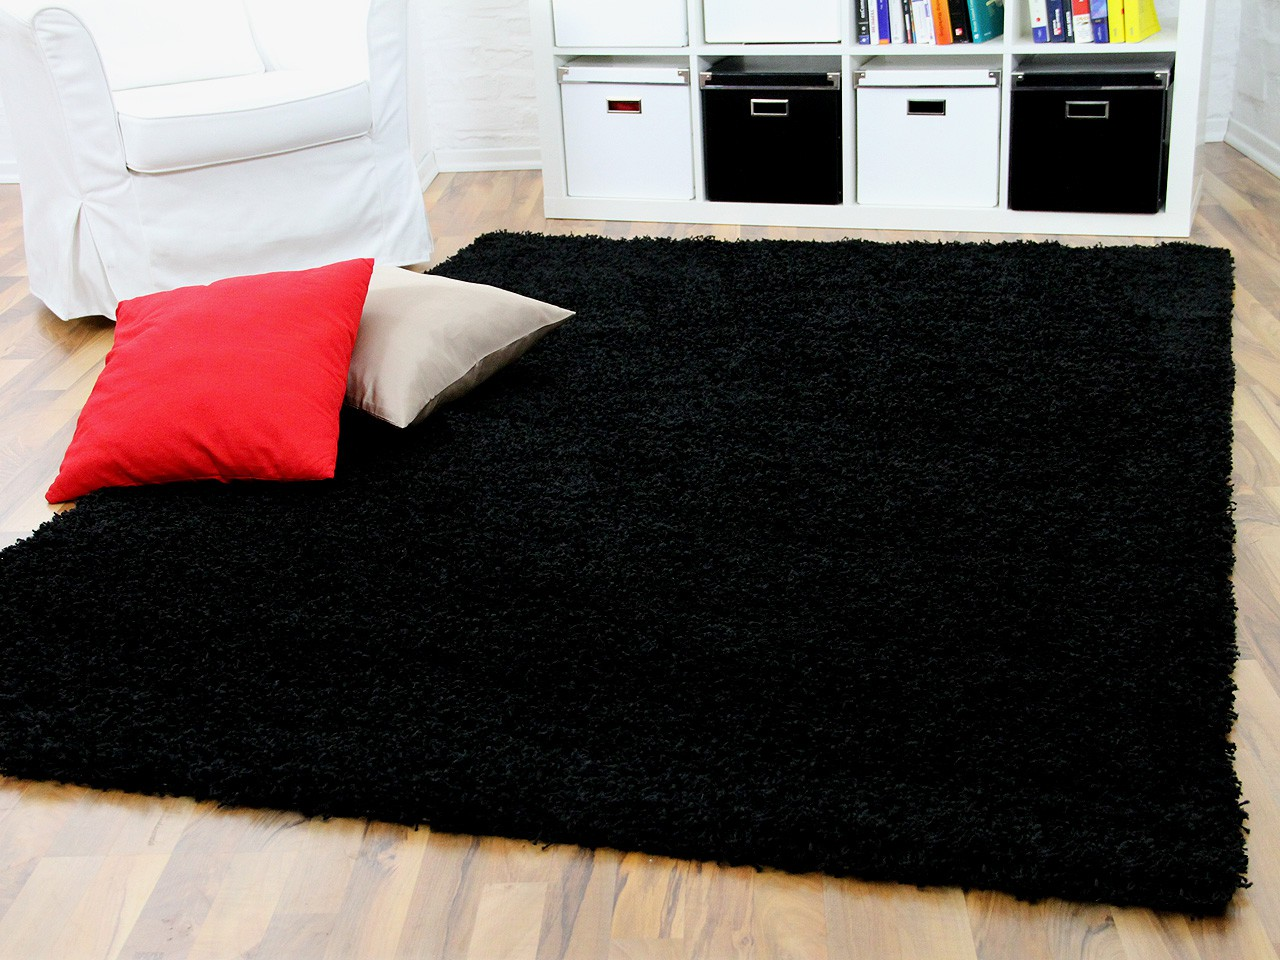 hochflor langflor shaggy teppich aloha schwarz teppiche. Black Bedroom Furniture Sets. Home Design Ideas